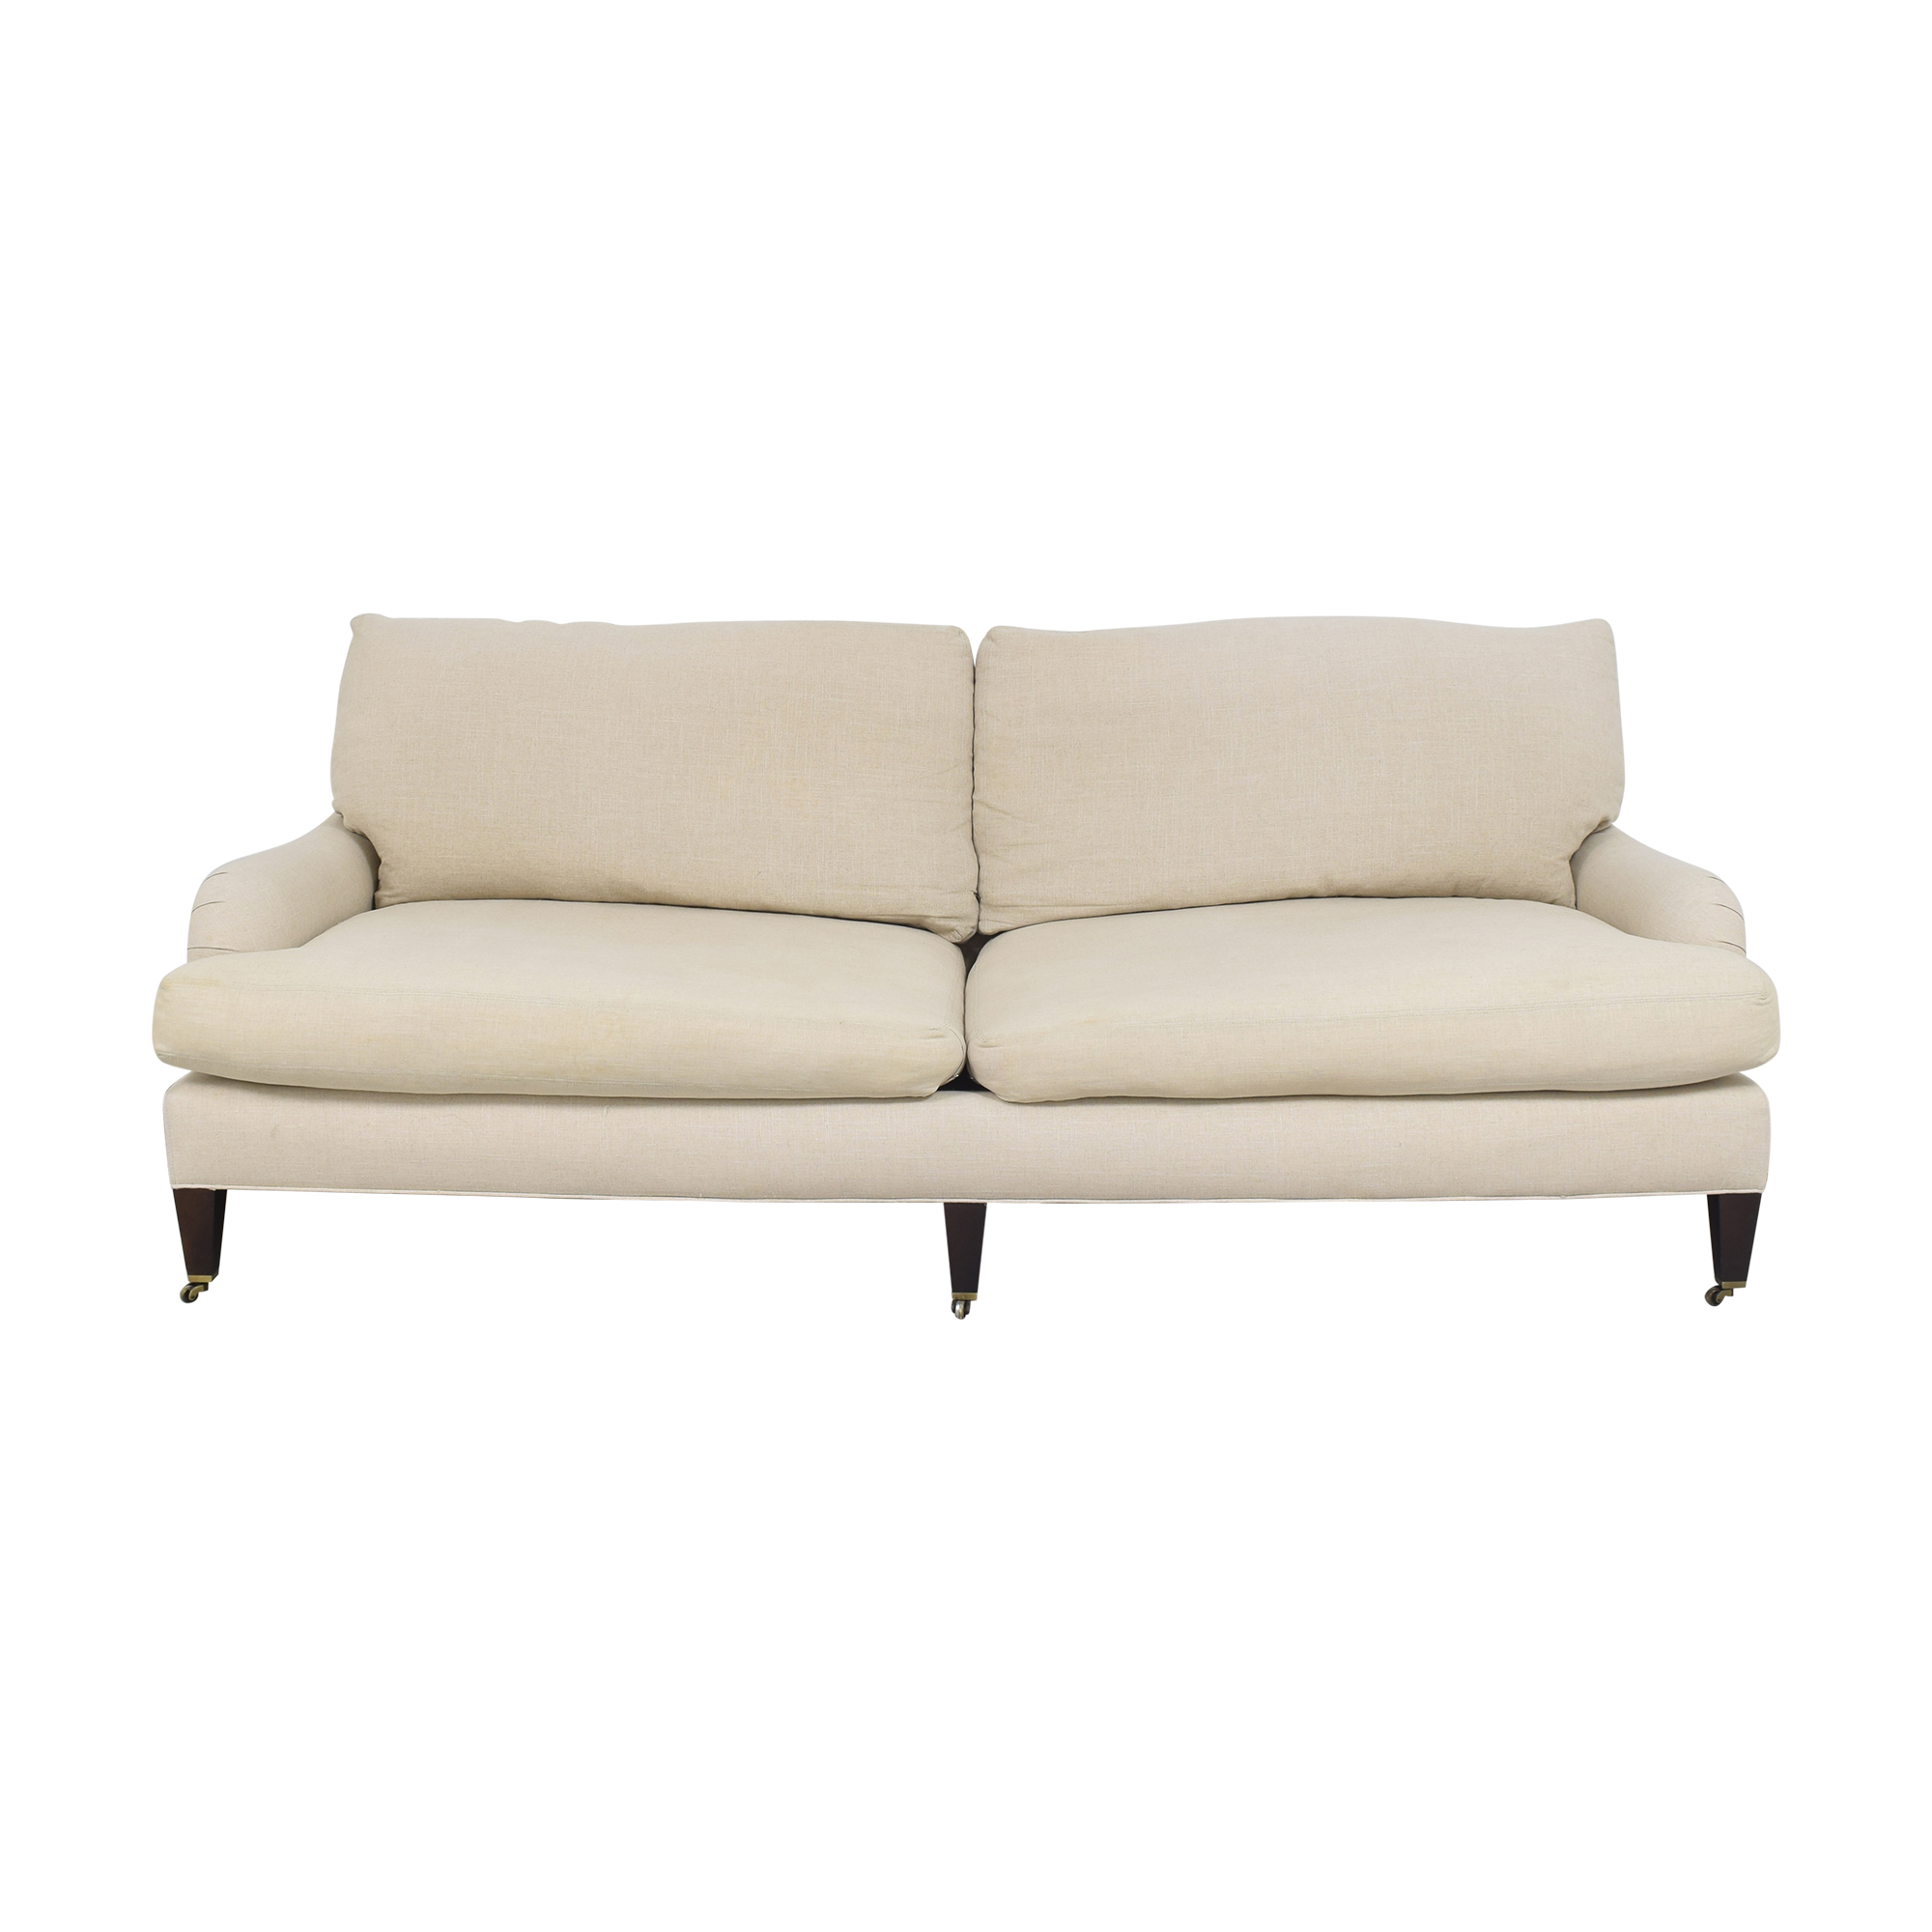 Crate & Barrel Crate & Barrel Essex Sofa with Casters discount